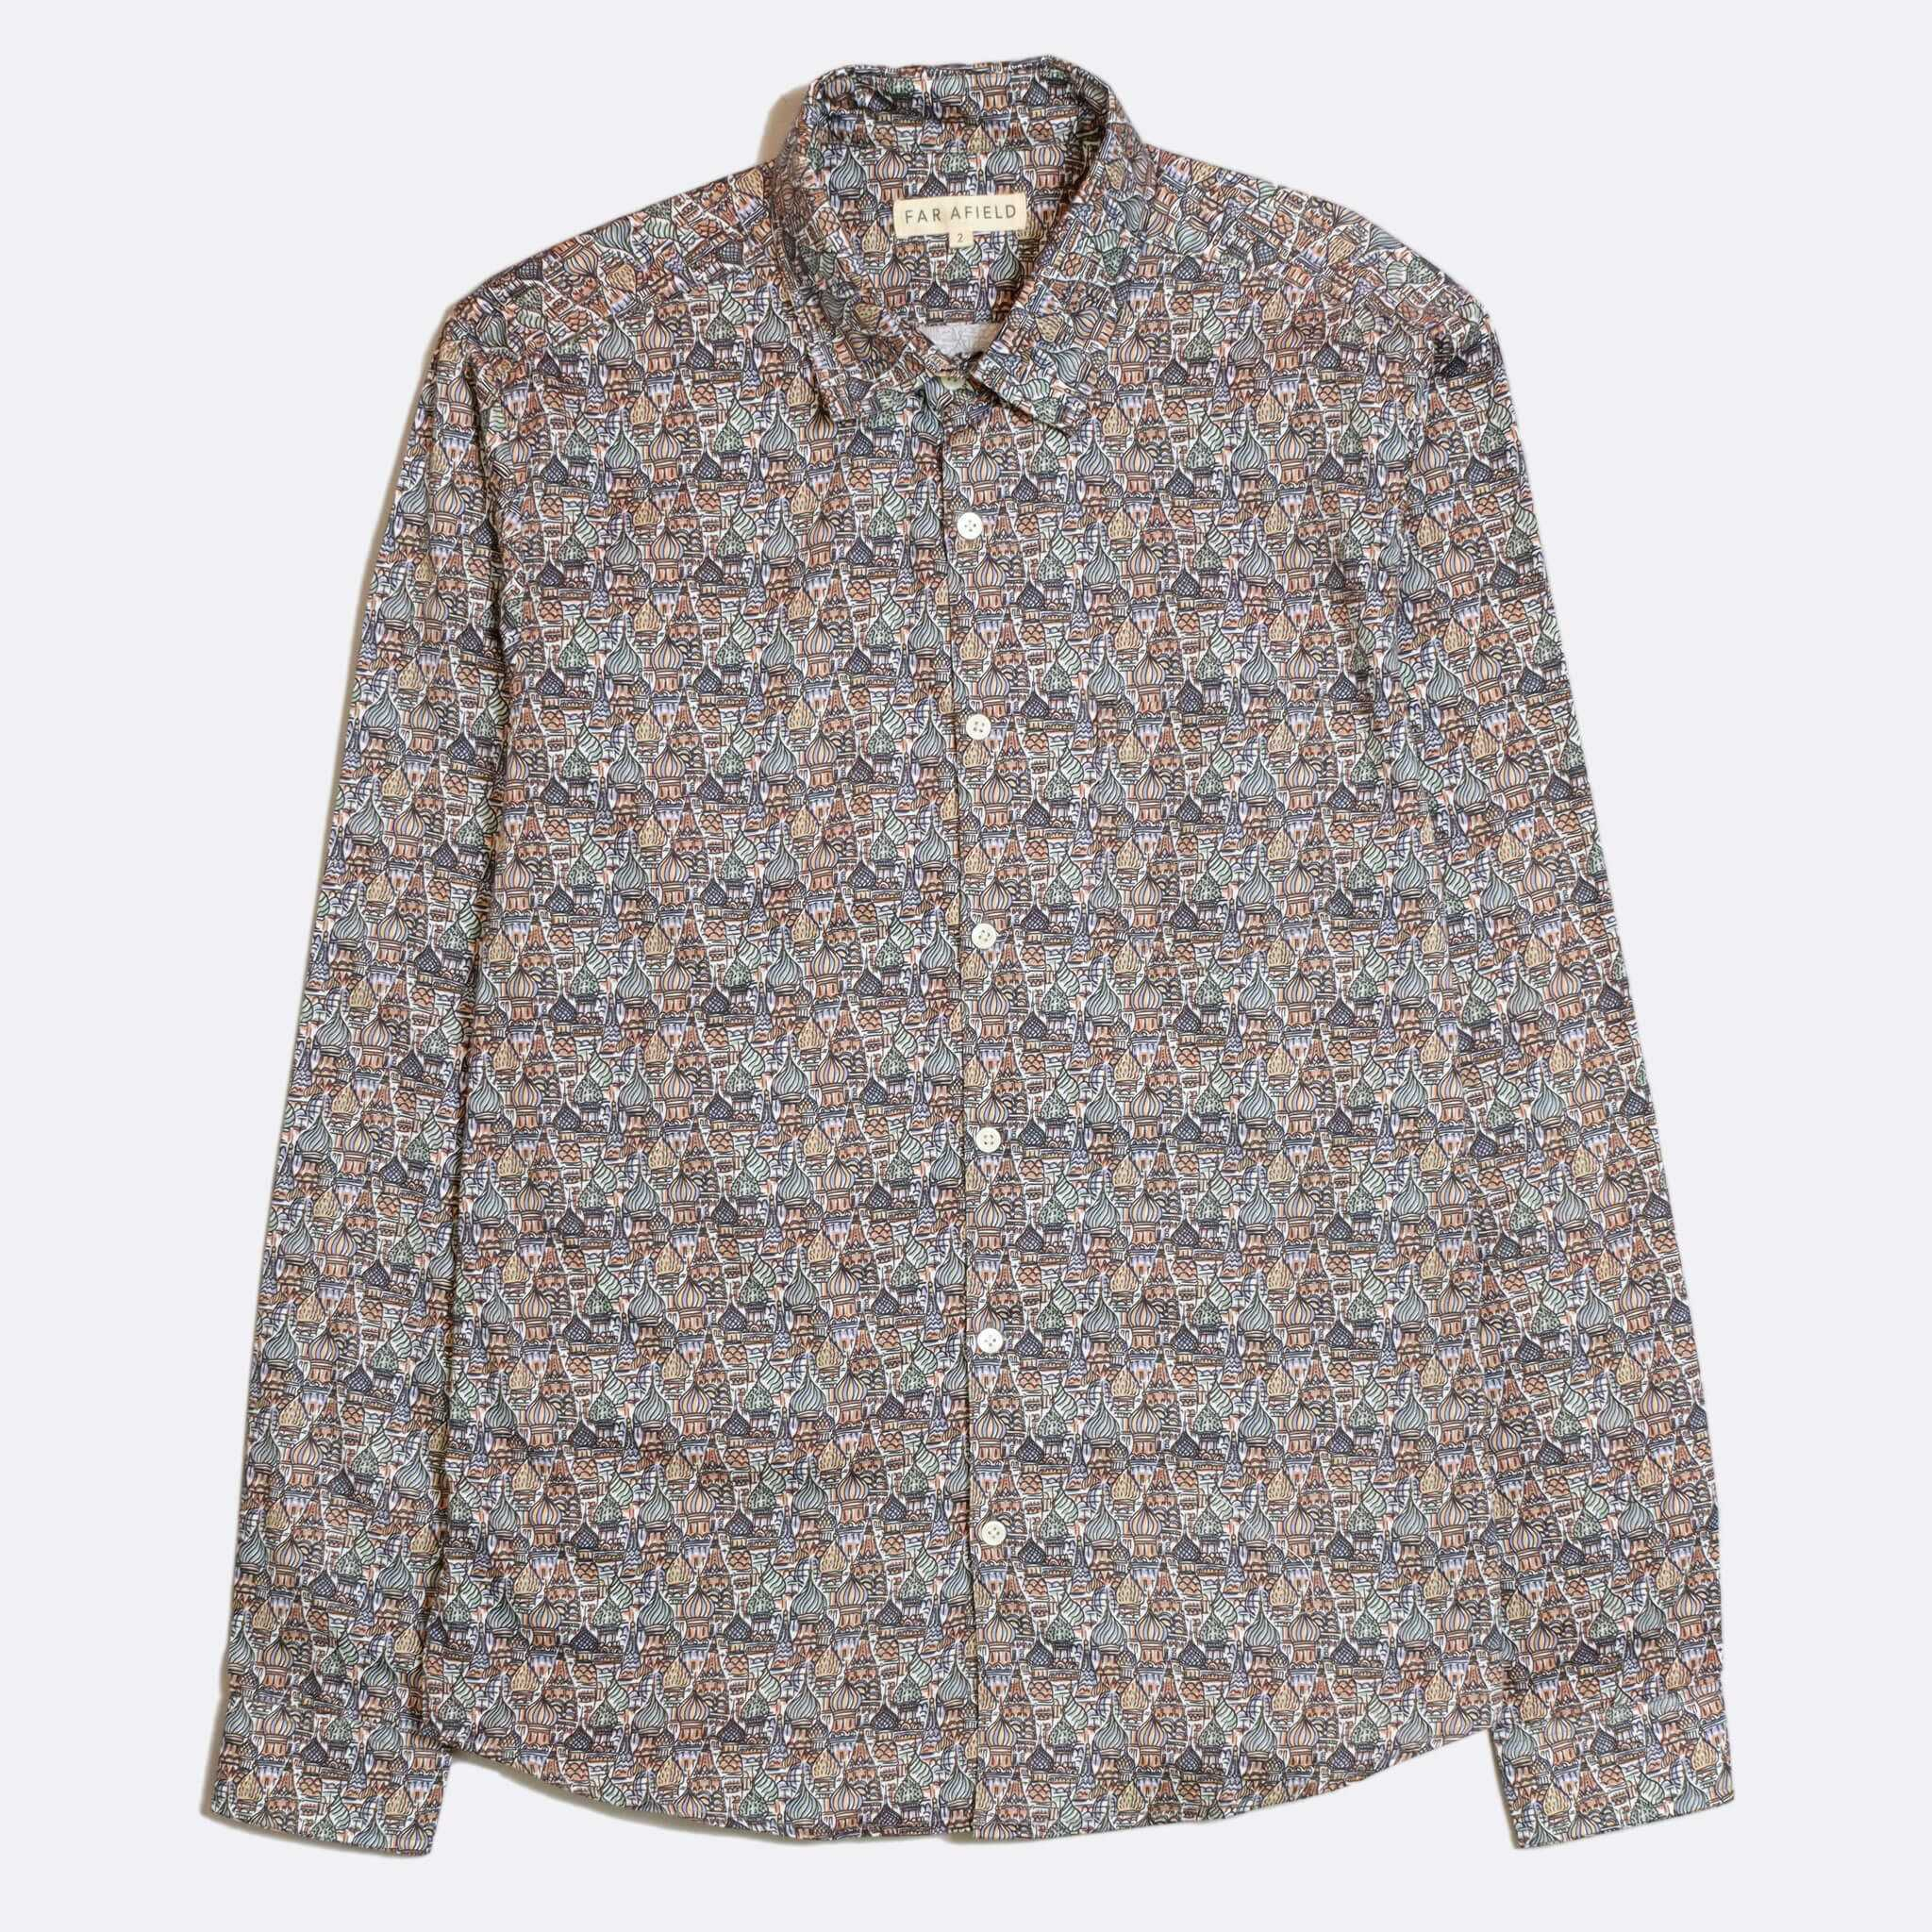 CAMISA FAR AFIELD MOD BUTTON DOWN LONG SLEEVE SPIRES